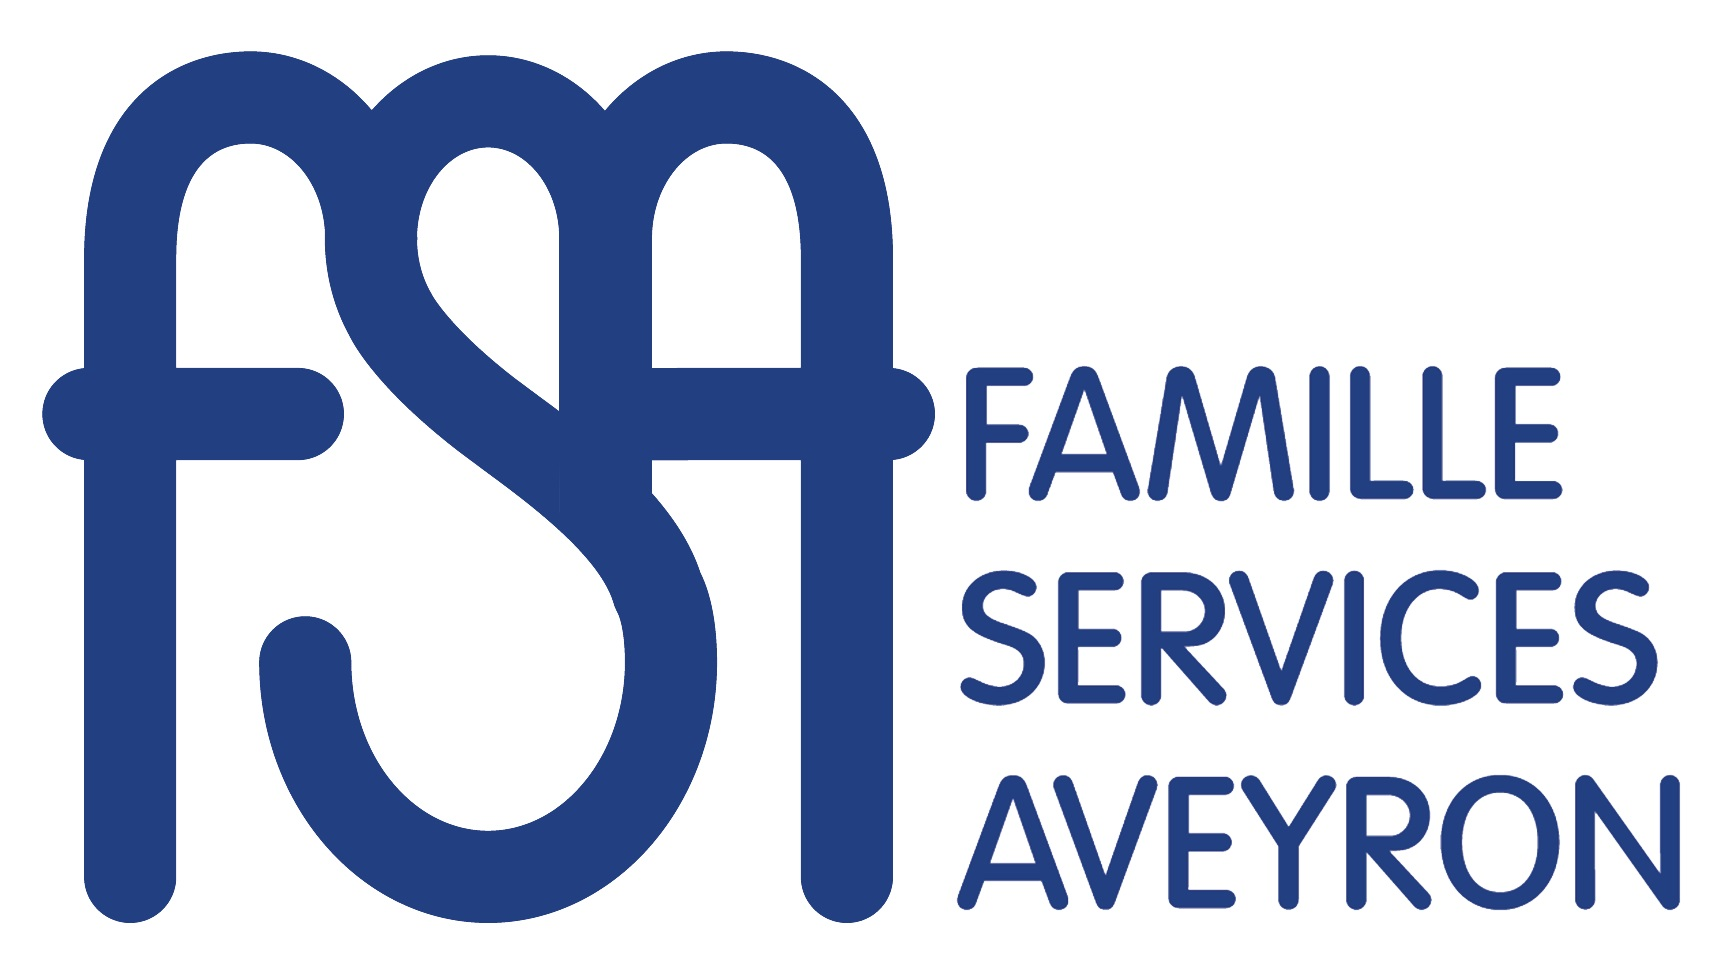 Famille Services Aveyron